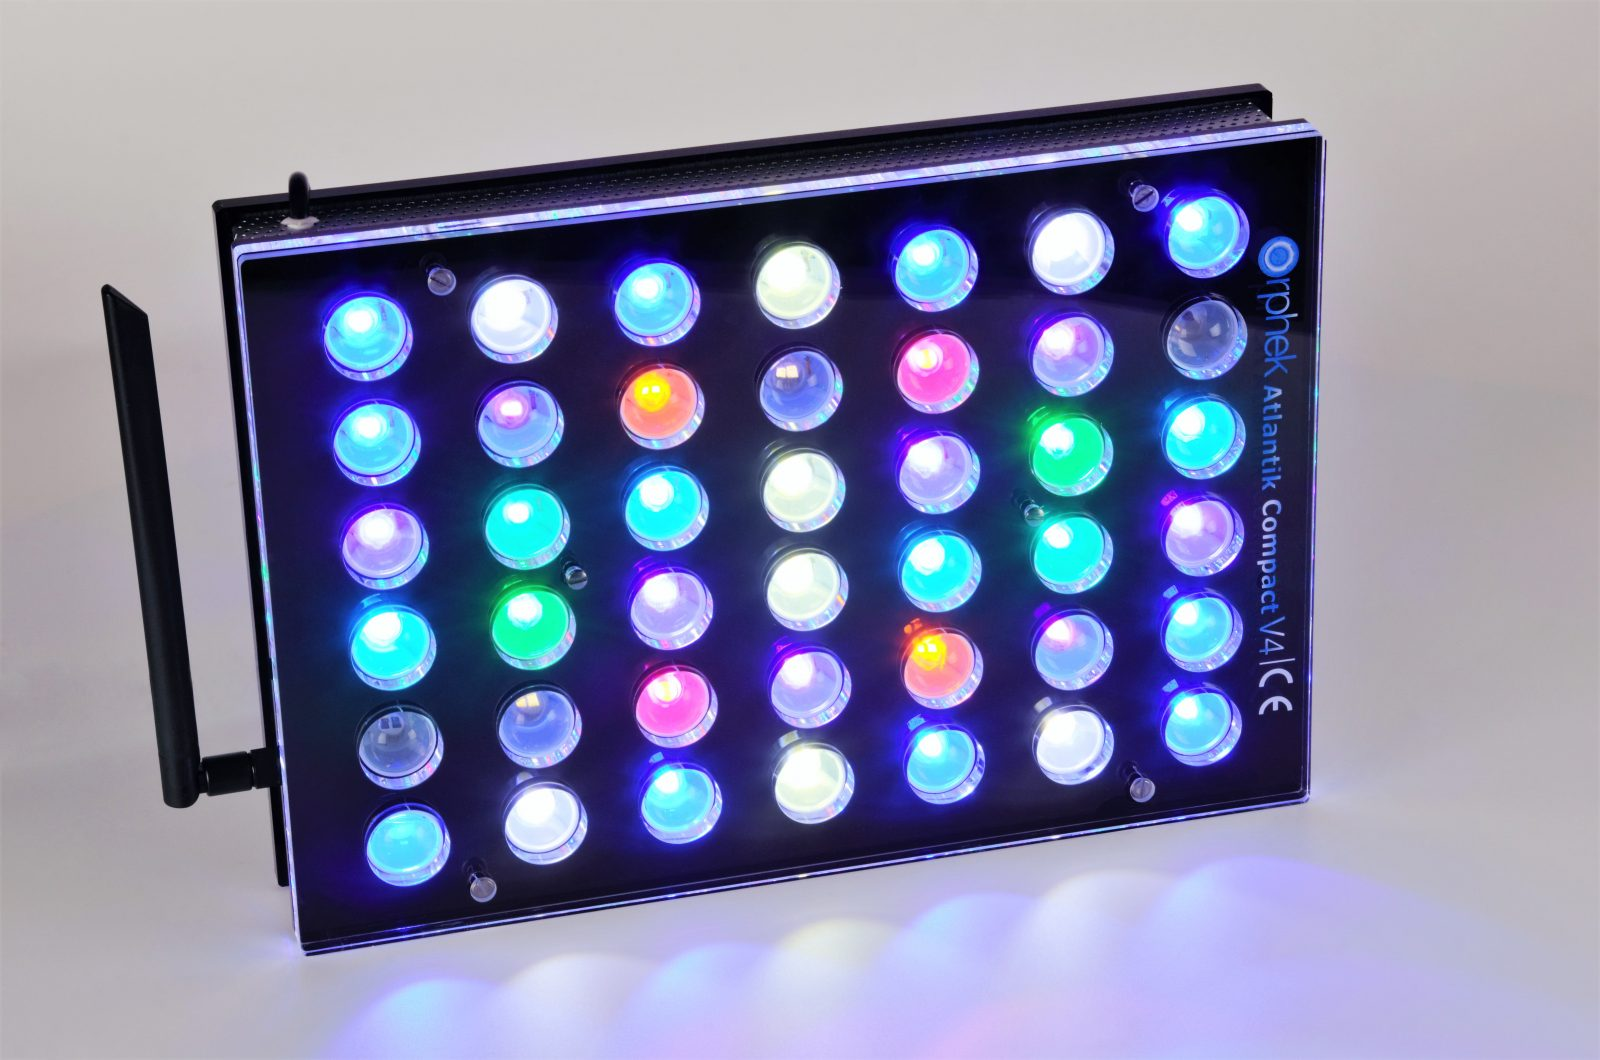 Orphek-Aquarium-LED-Lighting-Atlantik -Compact-V4-light -on - канал 1 + 2 + 3 + 4